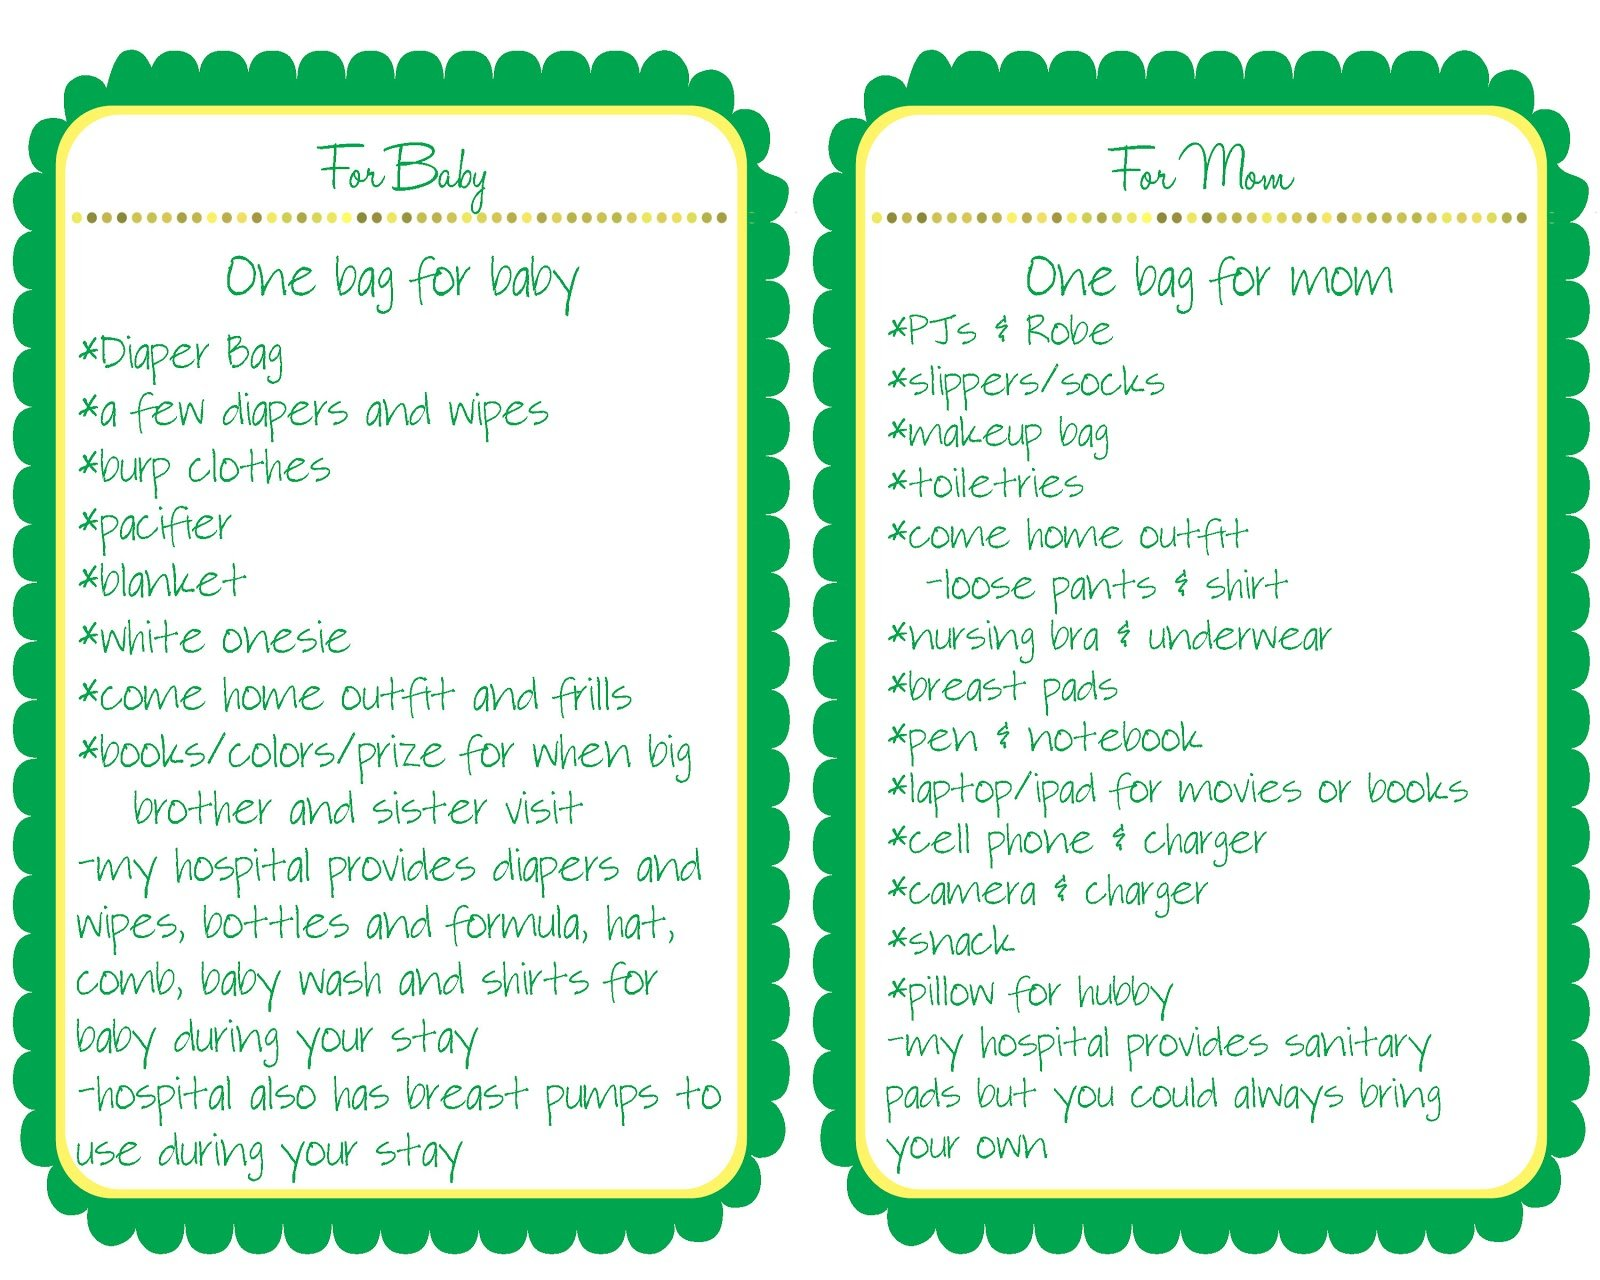 New Baby Hospital Packing List Liz On Call